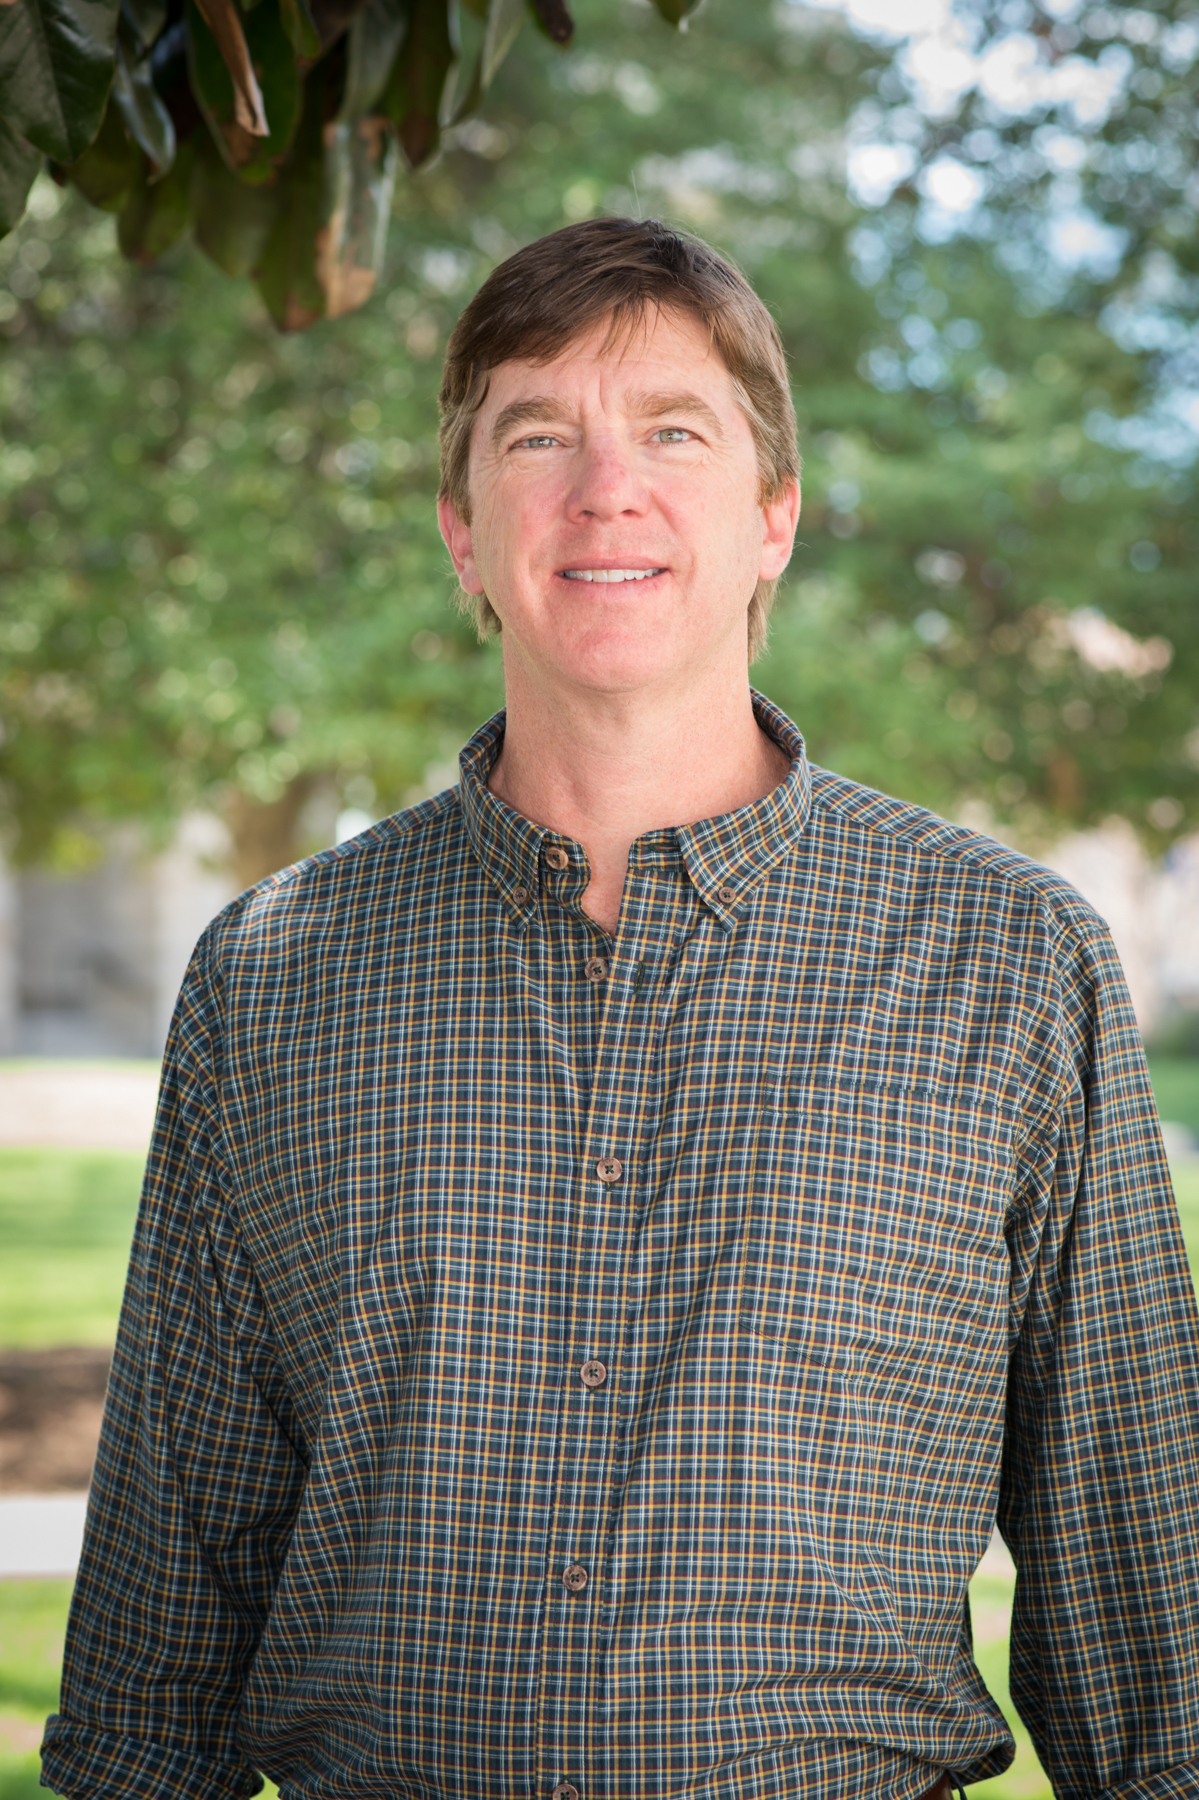 WCU's Outdoor Economy Conference Speaker David Knight